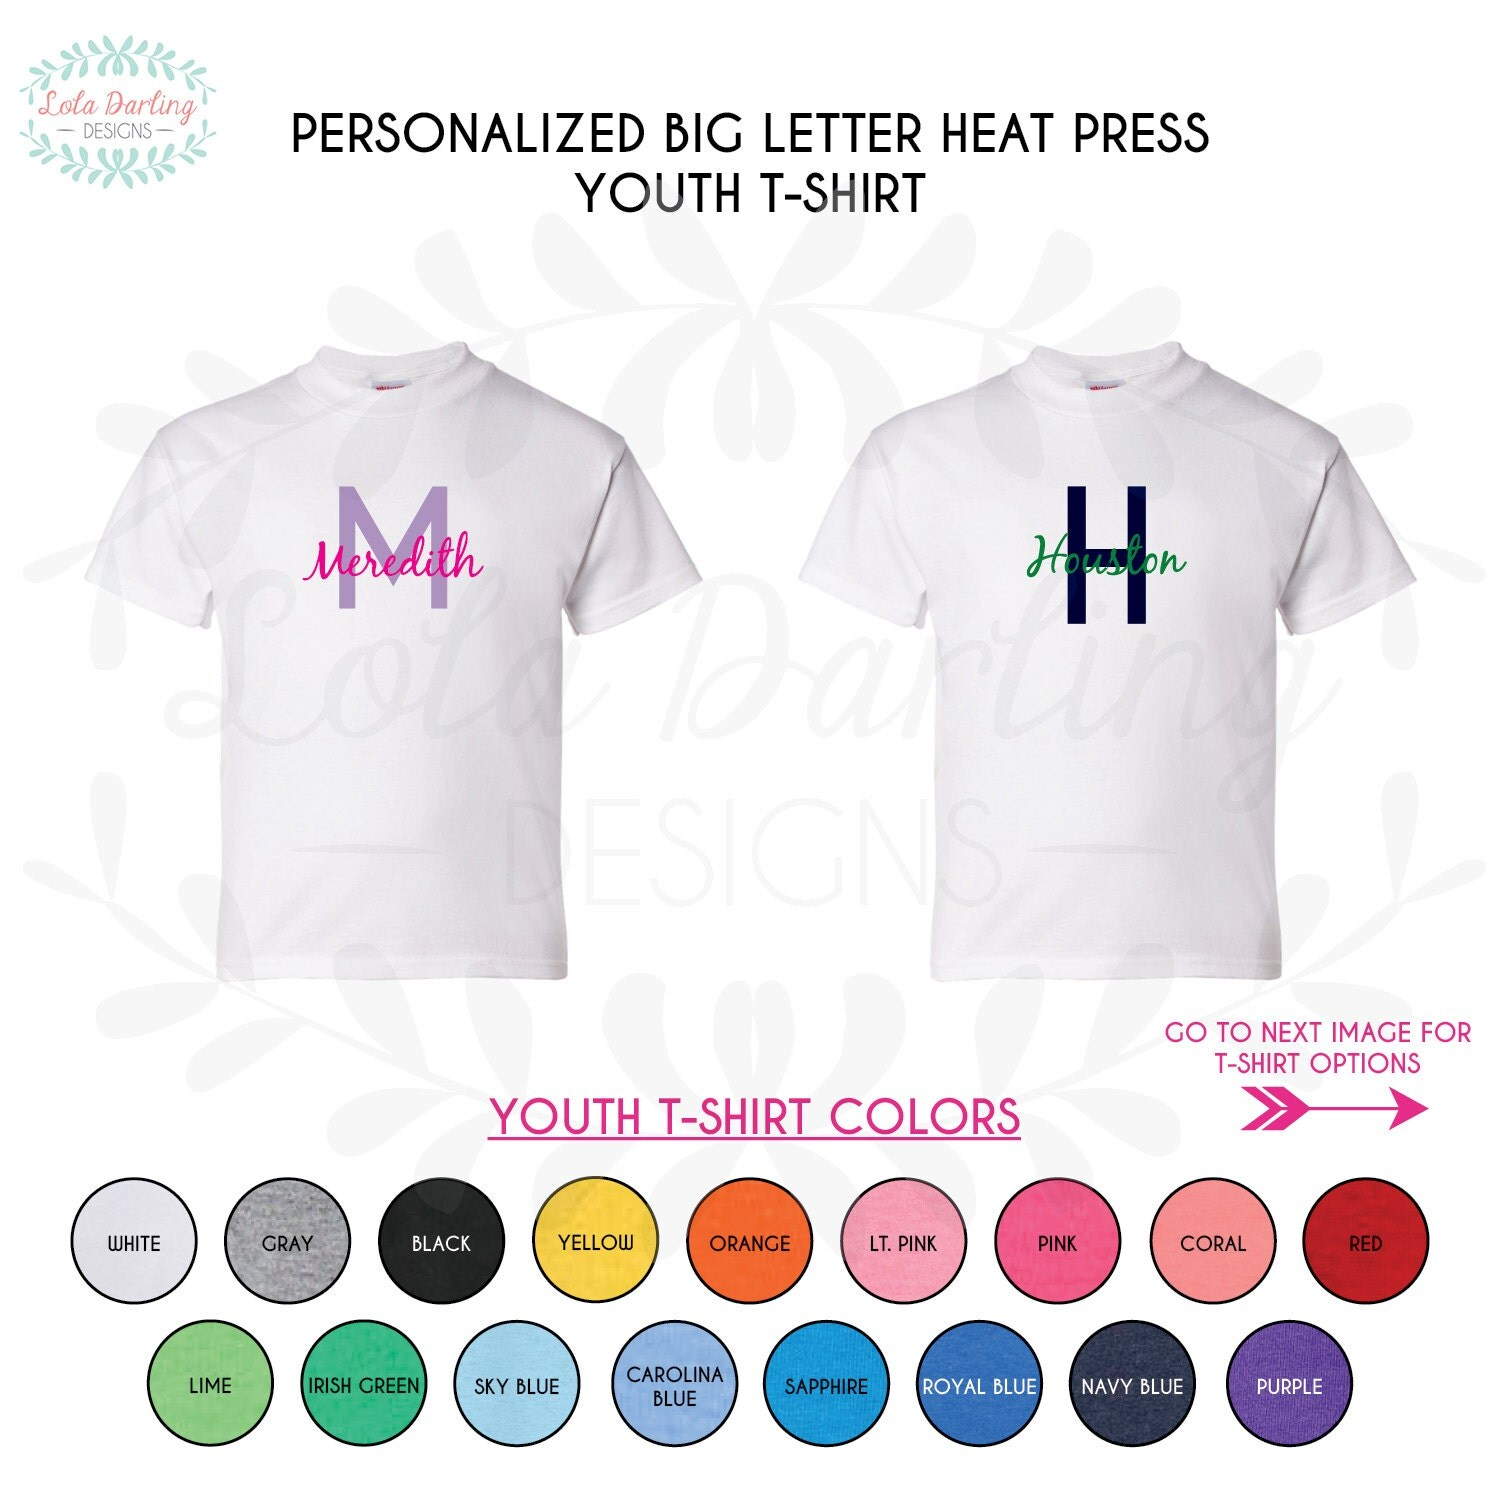 Custom heat press t shirt flyer bing images for Heat pressing t shirts